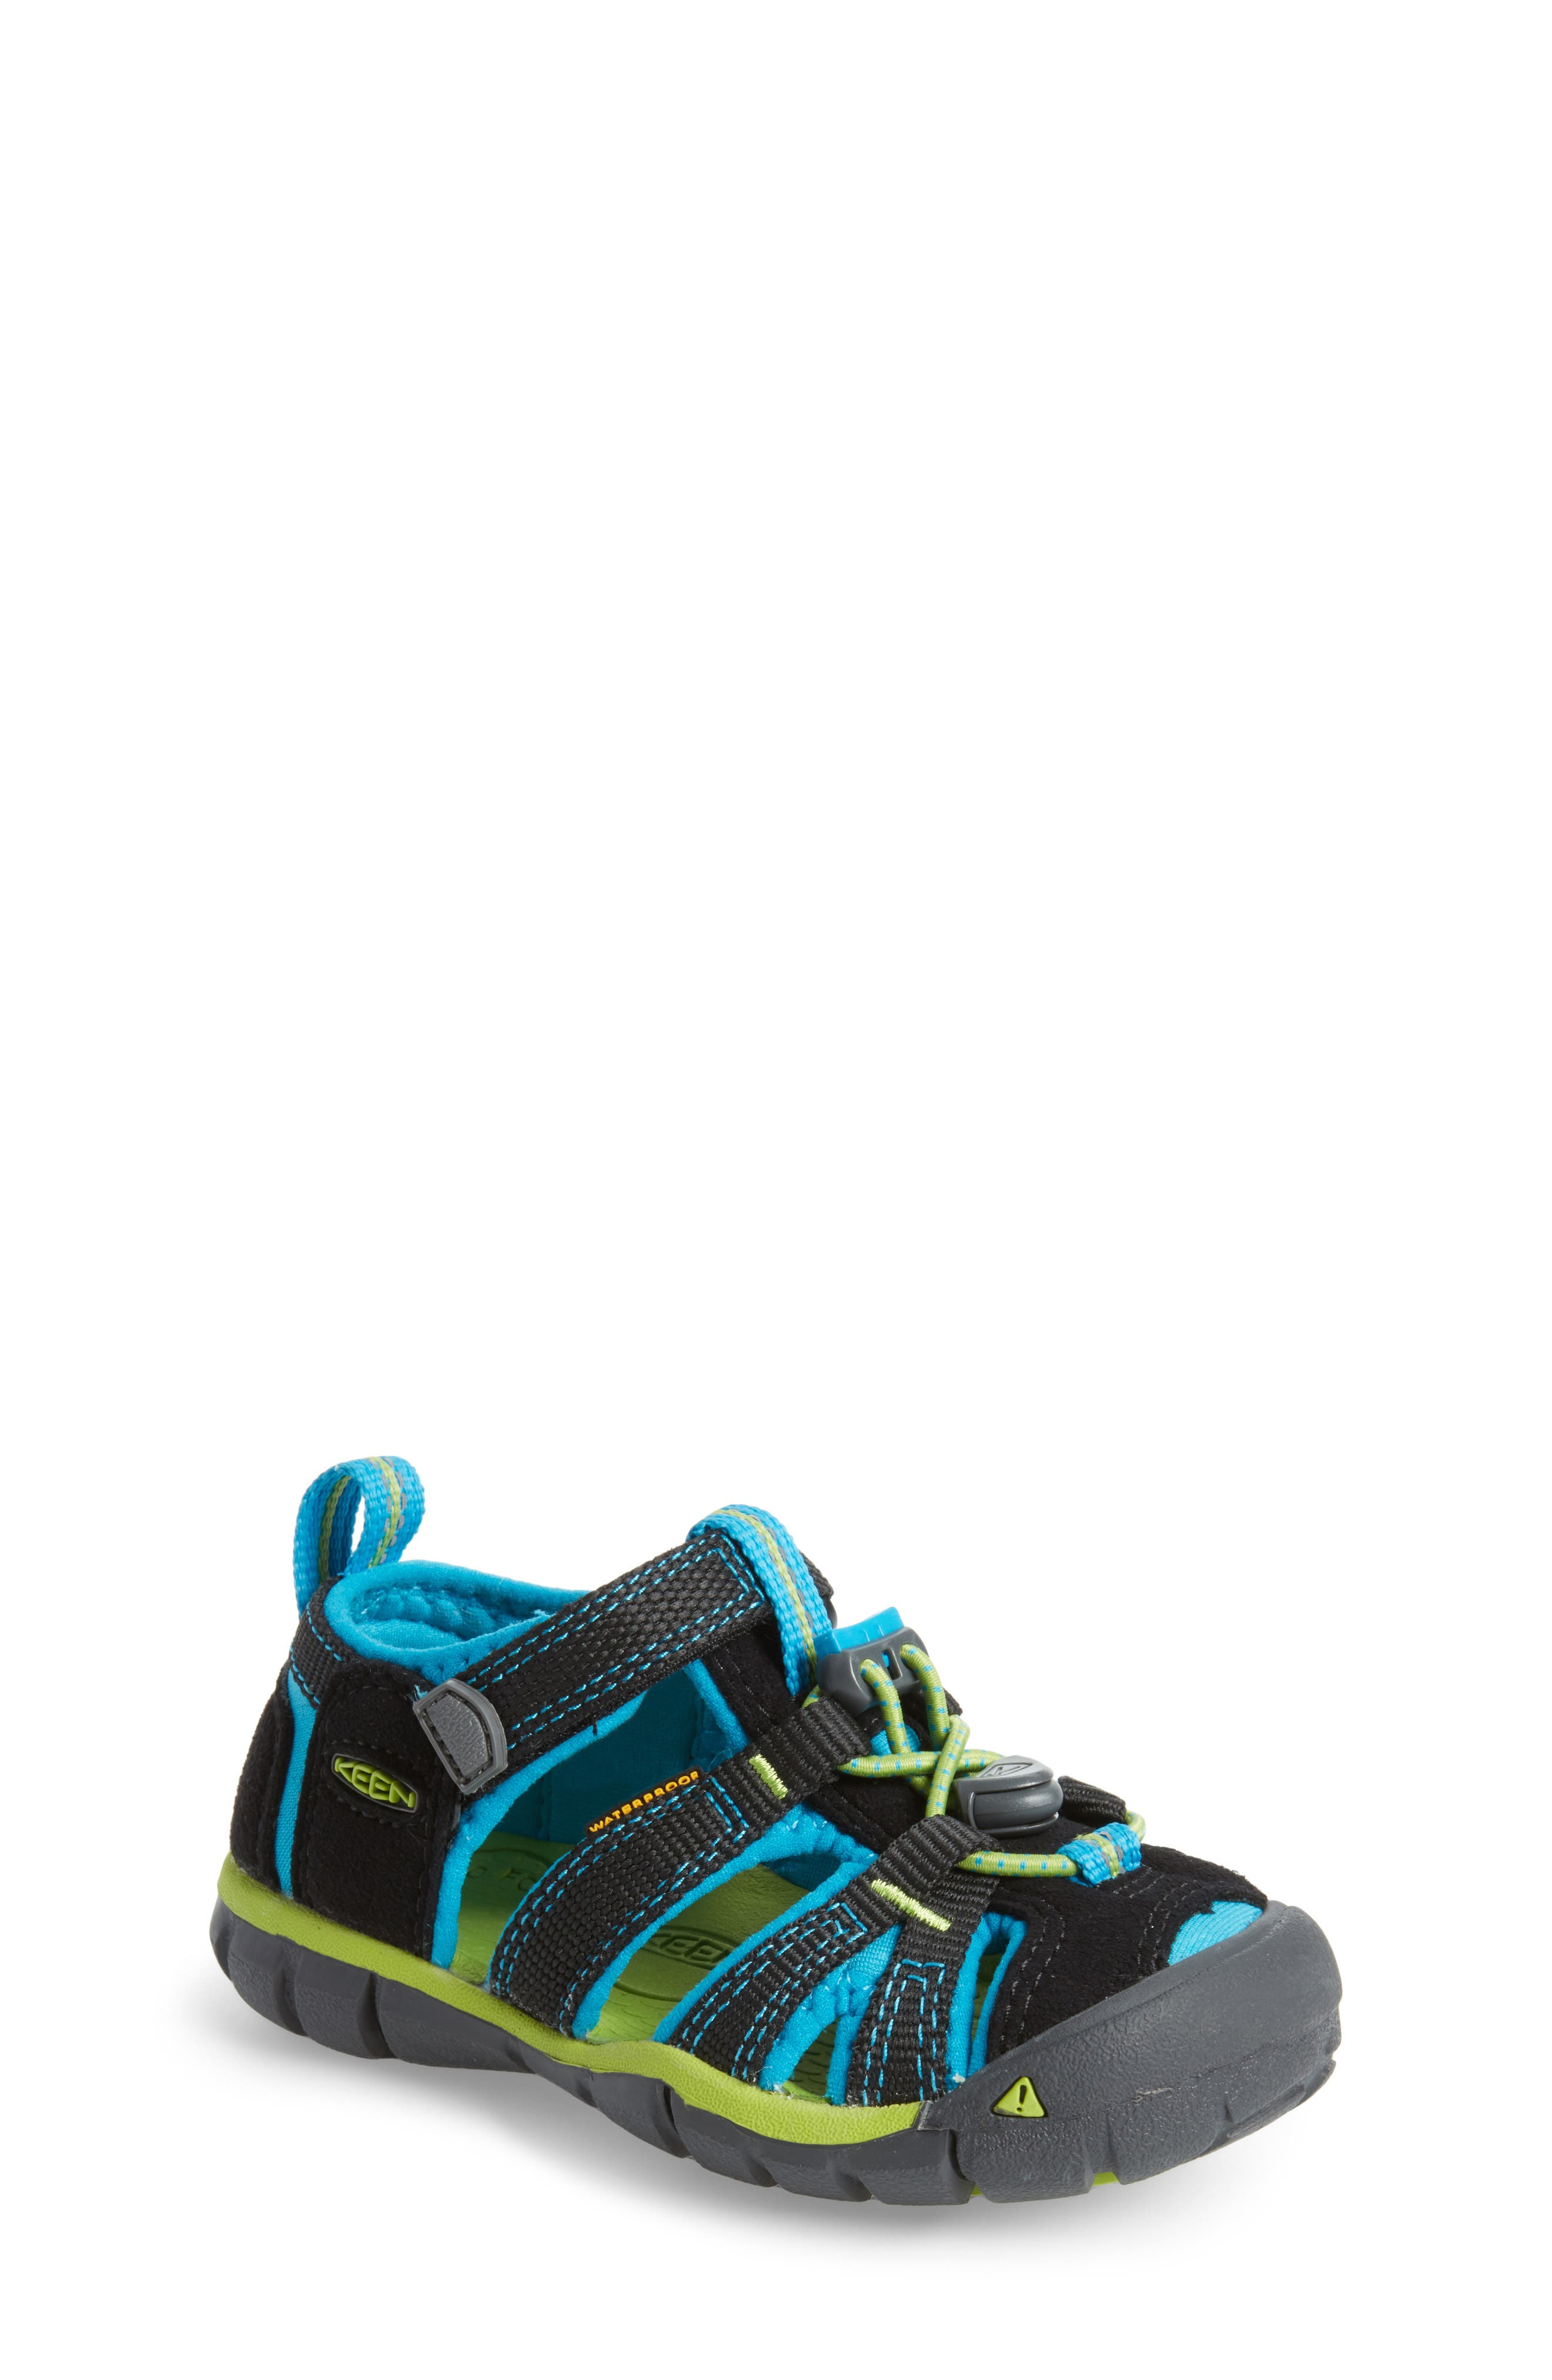 KEEN, 'Seacamp II' Water Friendly Sandal, Main thumbnail 1, color, BLACK/ BLUE DANUBE